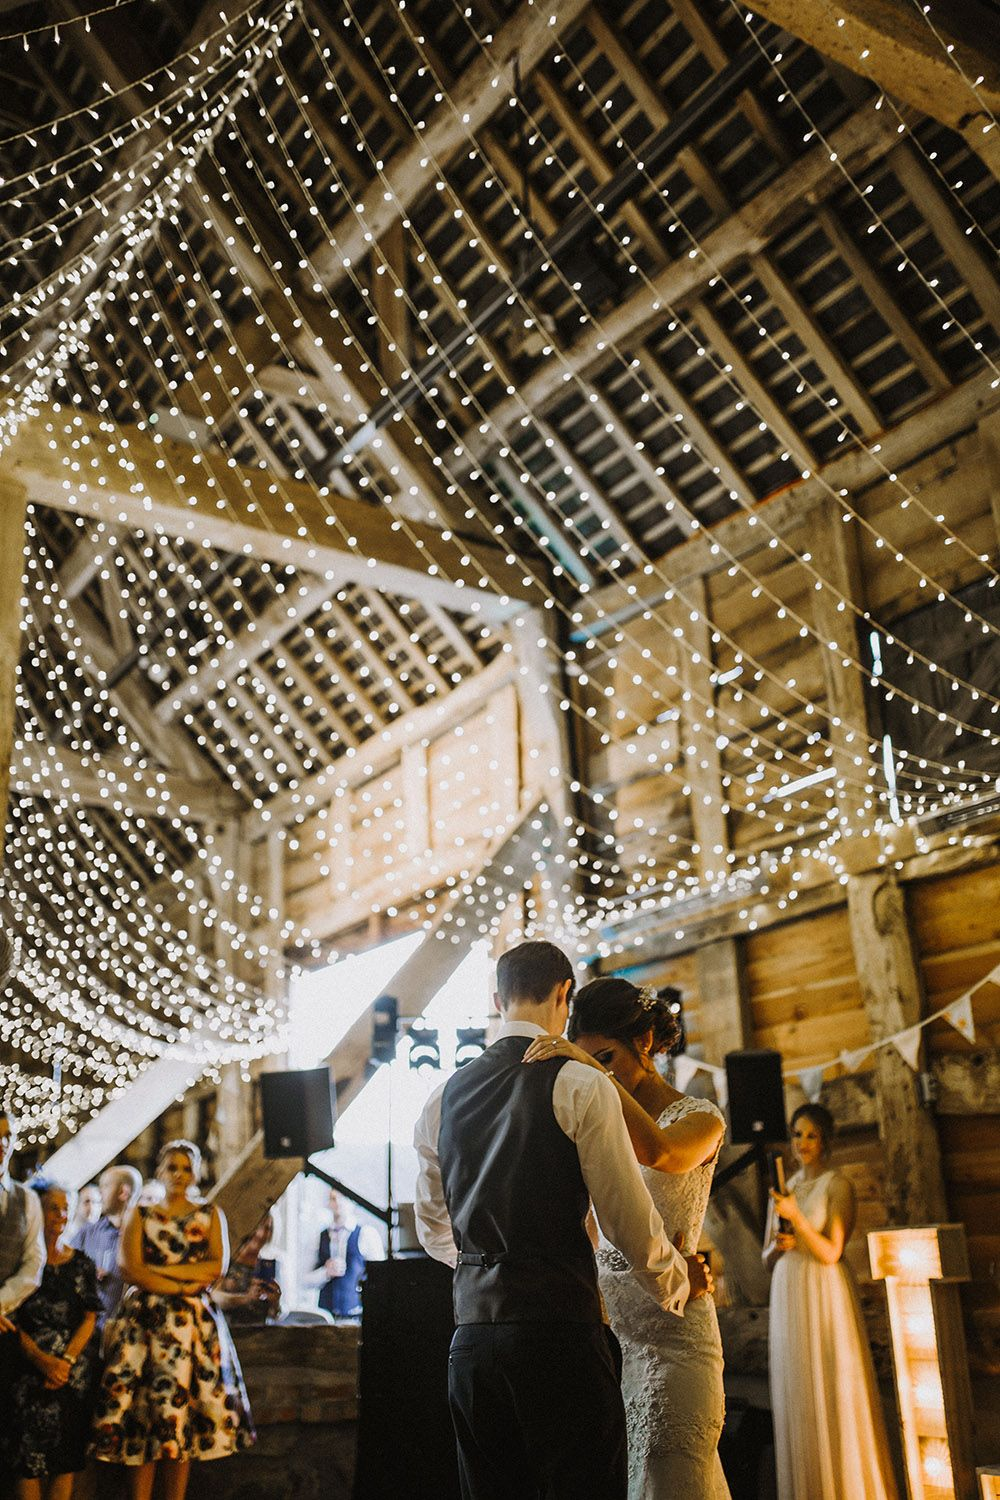 Barn wedding with fairy lights  Pimhill Barn Wedding in Shrophire Super Personal u Magical with Cat